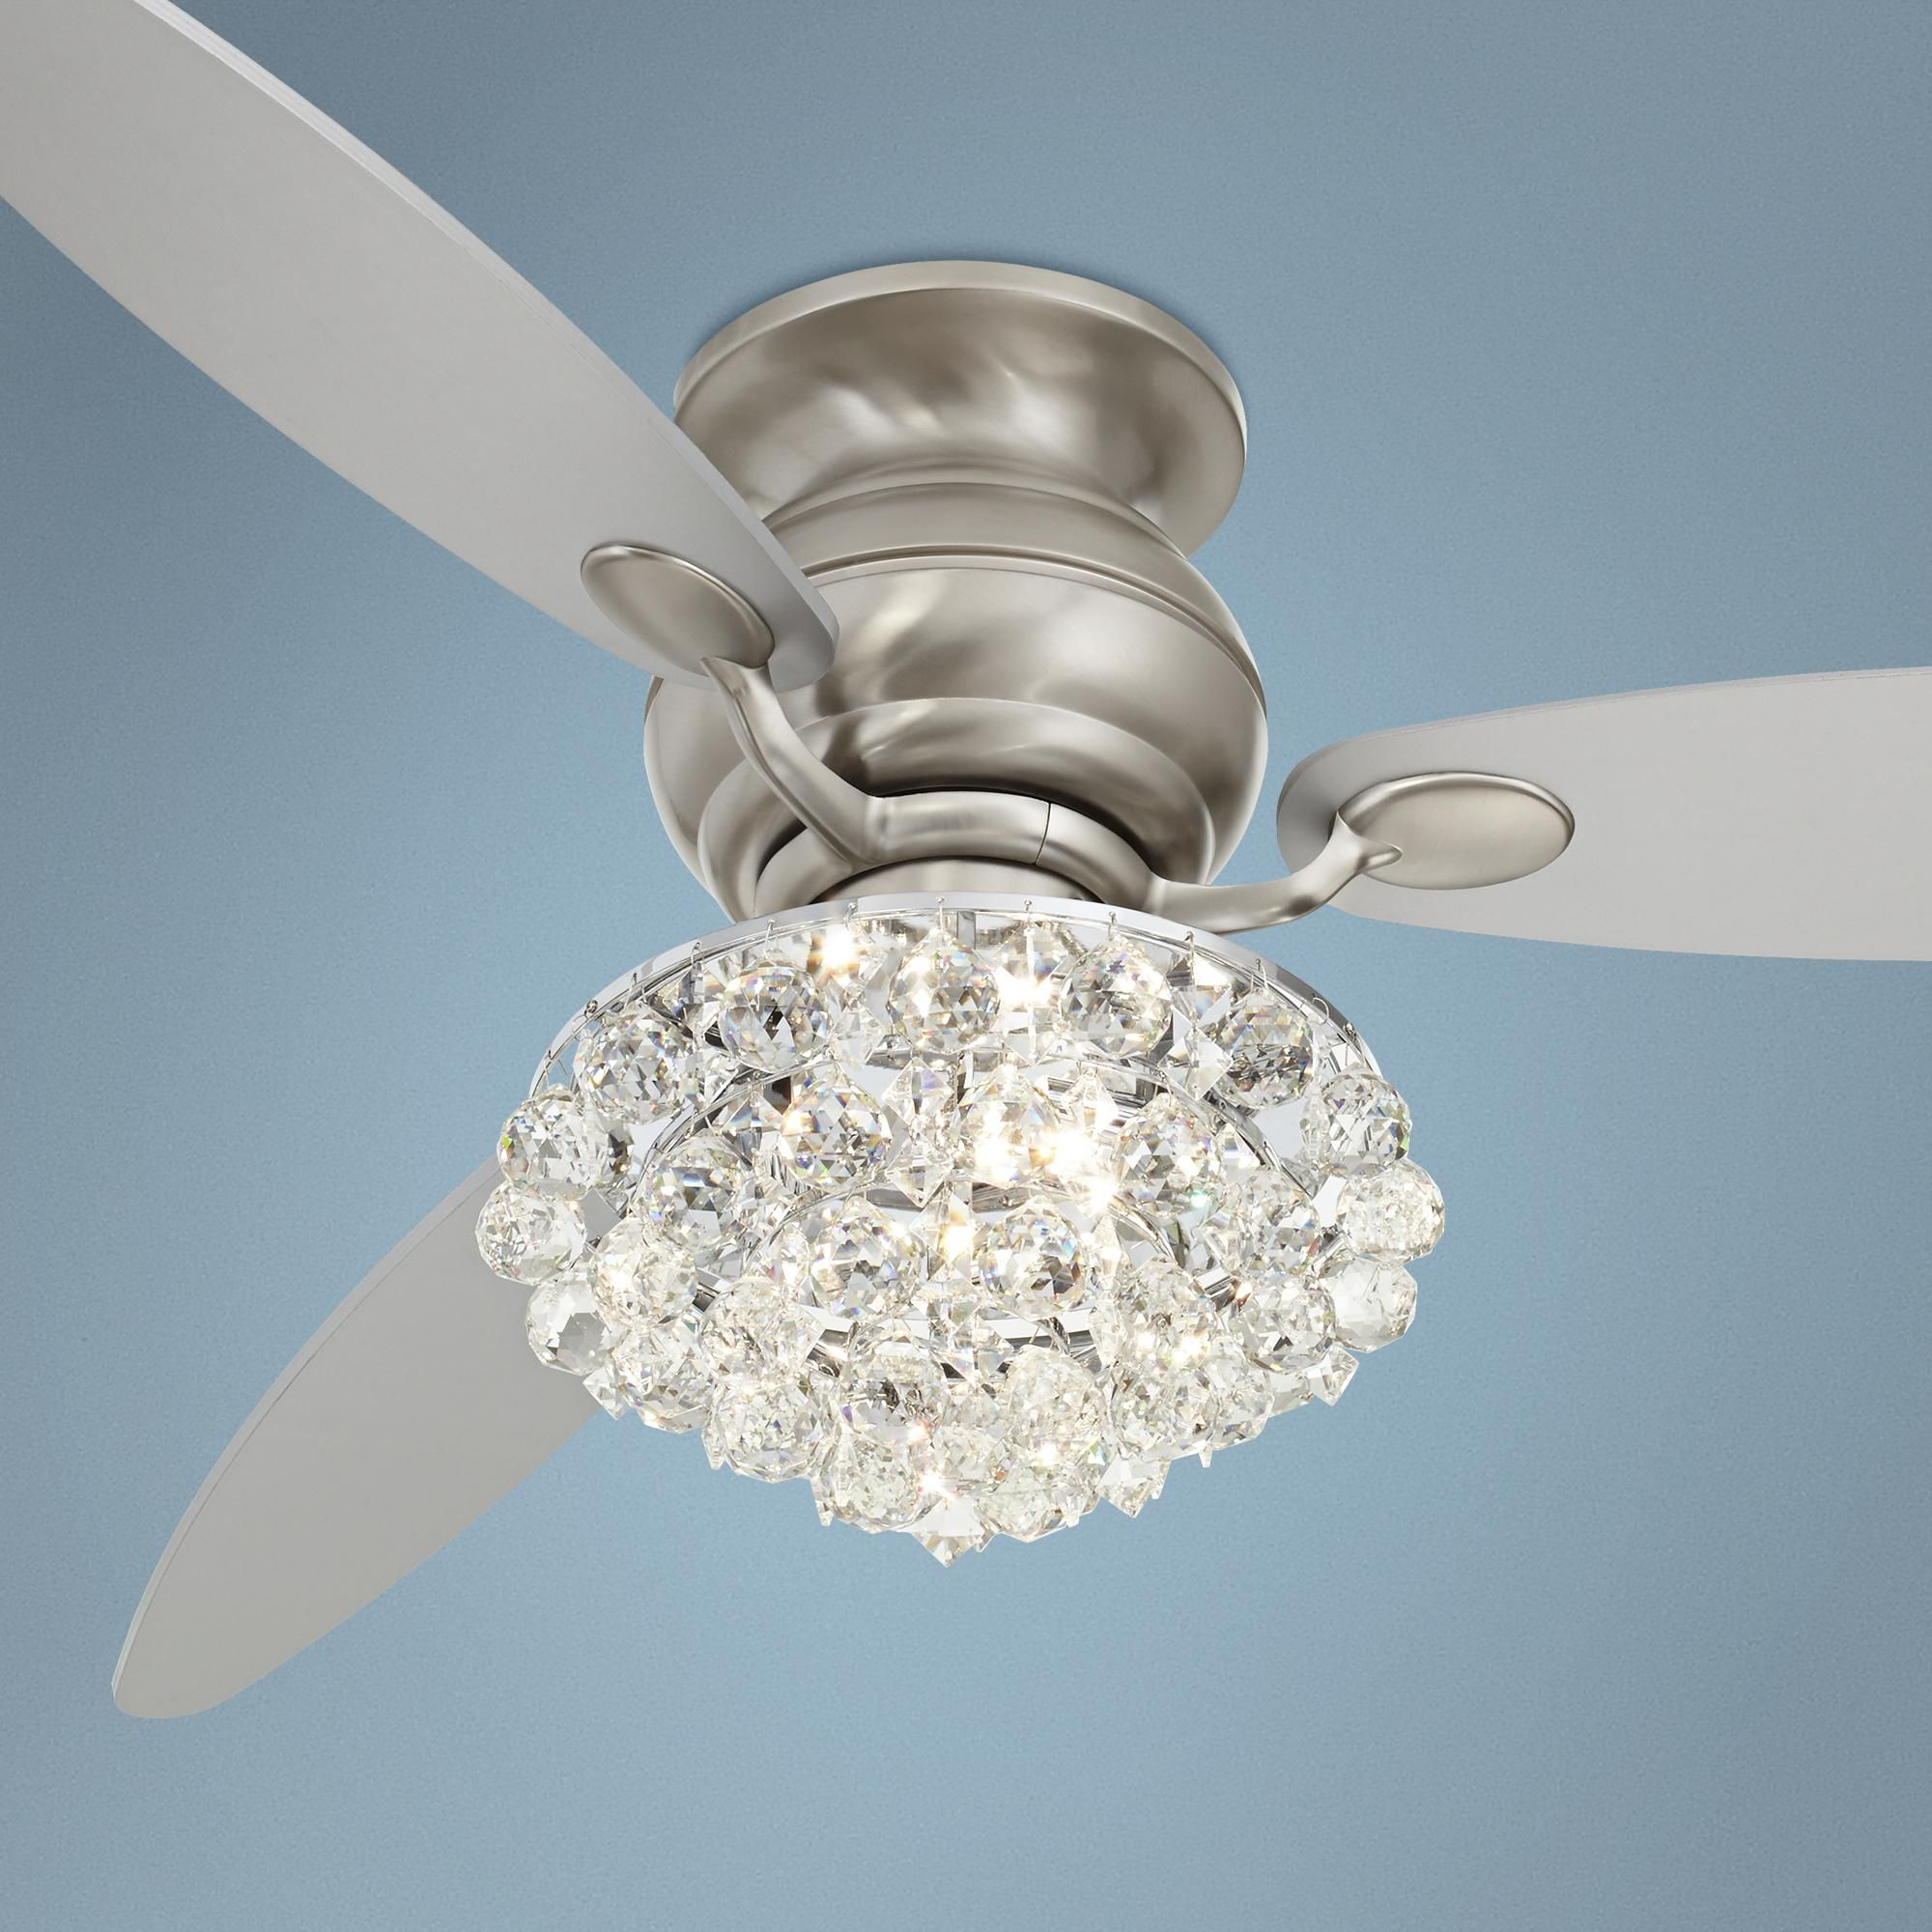 60 Quot Spyder Brushed Steel Crystal Hugger Ceiling Fan